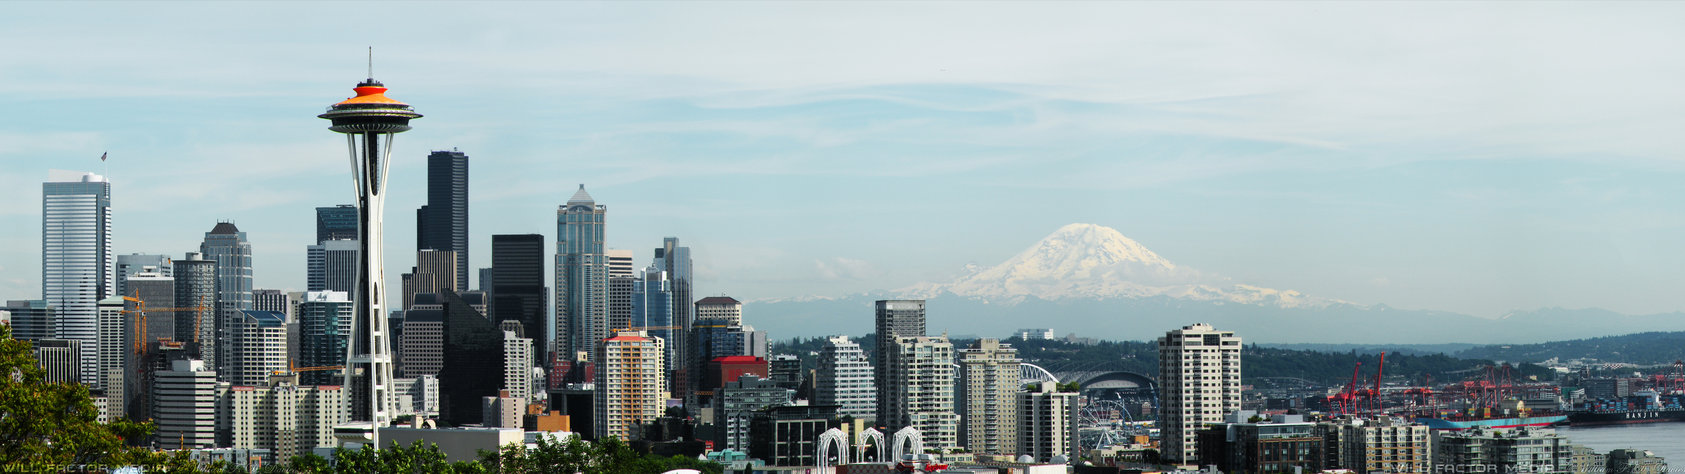 Dual Monitor 3840x1080 Seattle Wallpaper by WillFactorMedia on 1685x474